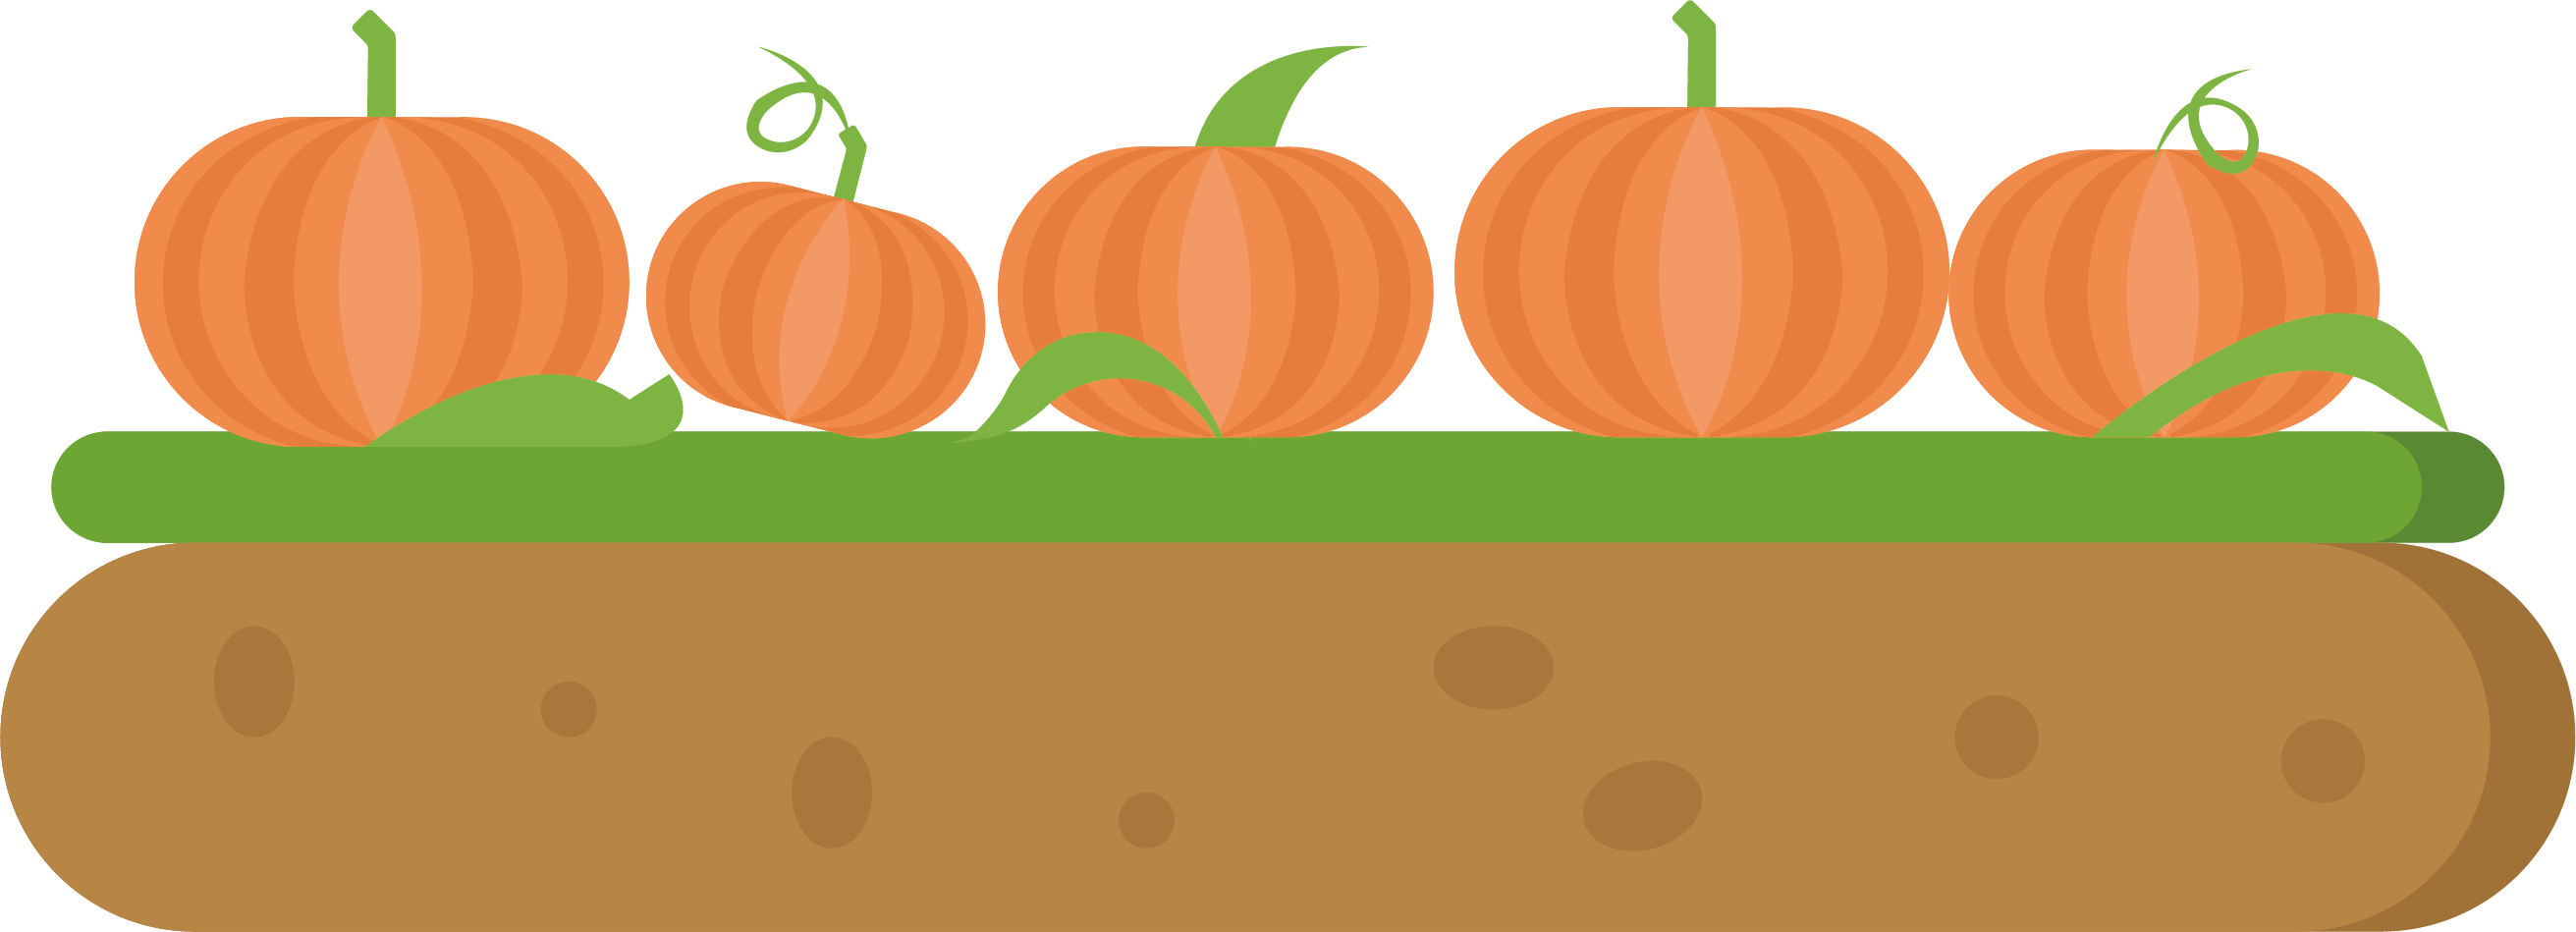 Pumpkin seeds planting clipart clipart black and white stock Pumpkin Calabaza Adobe Illustrator - Land pumpkin seed elements 2623 ... clipart black and white stock